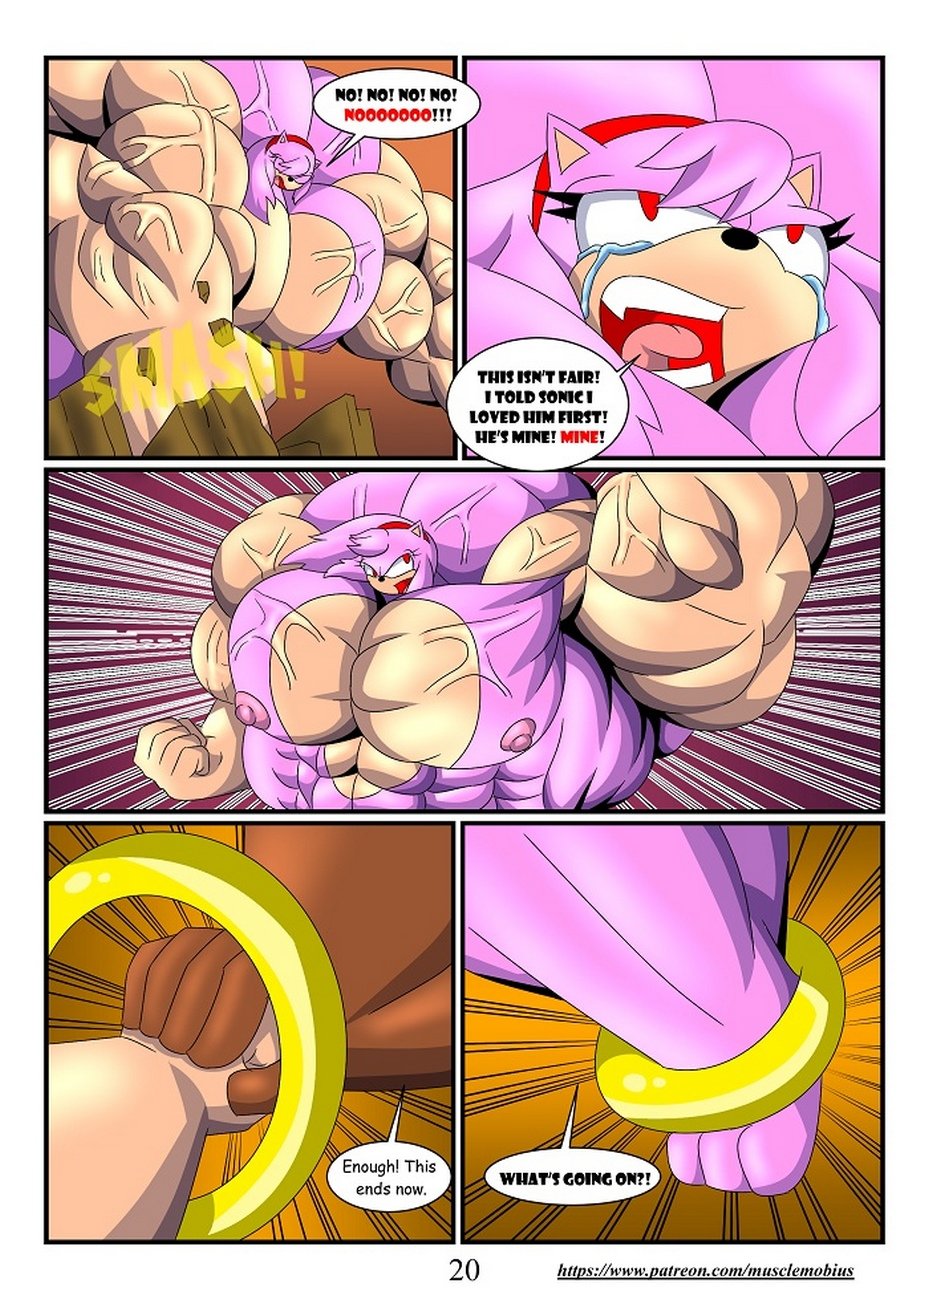 Muscle Mobius 3 - part 2